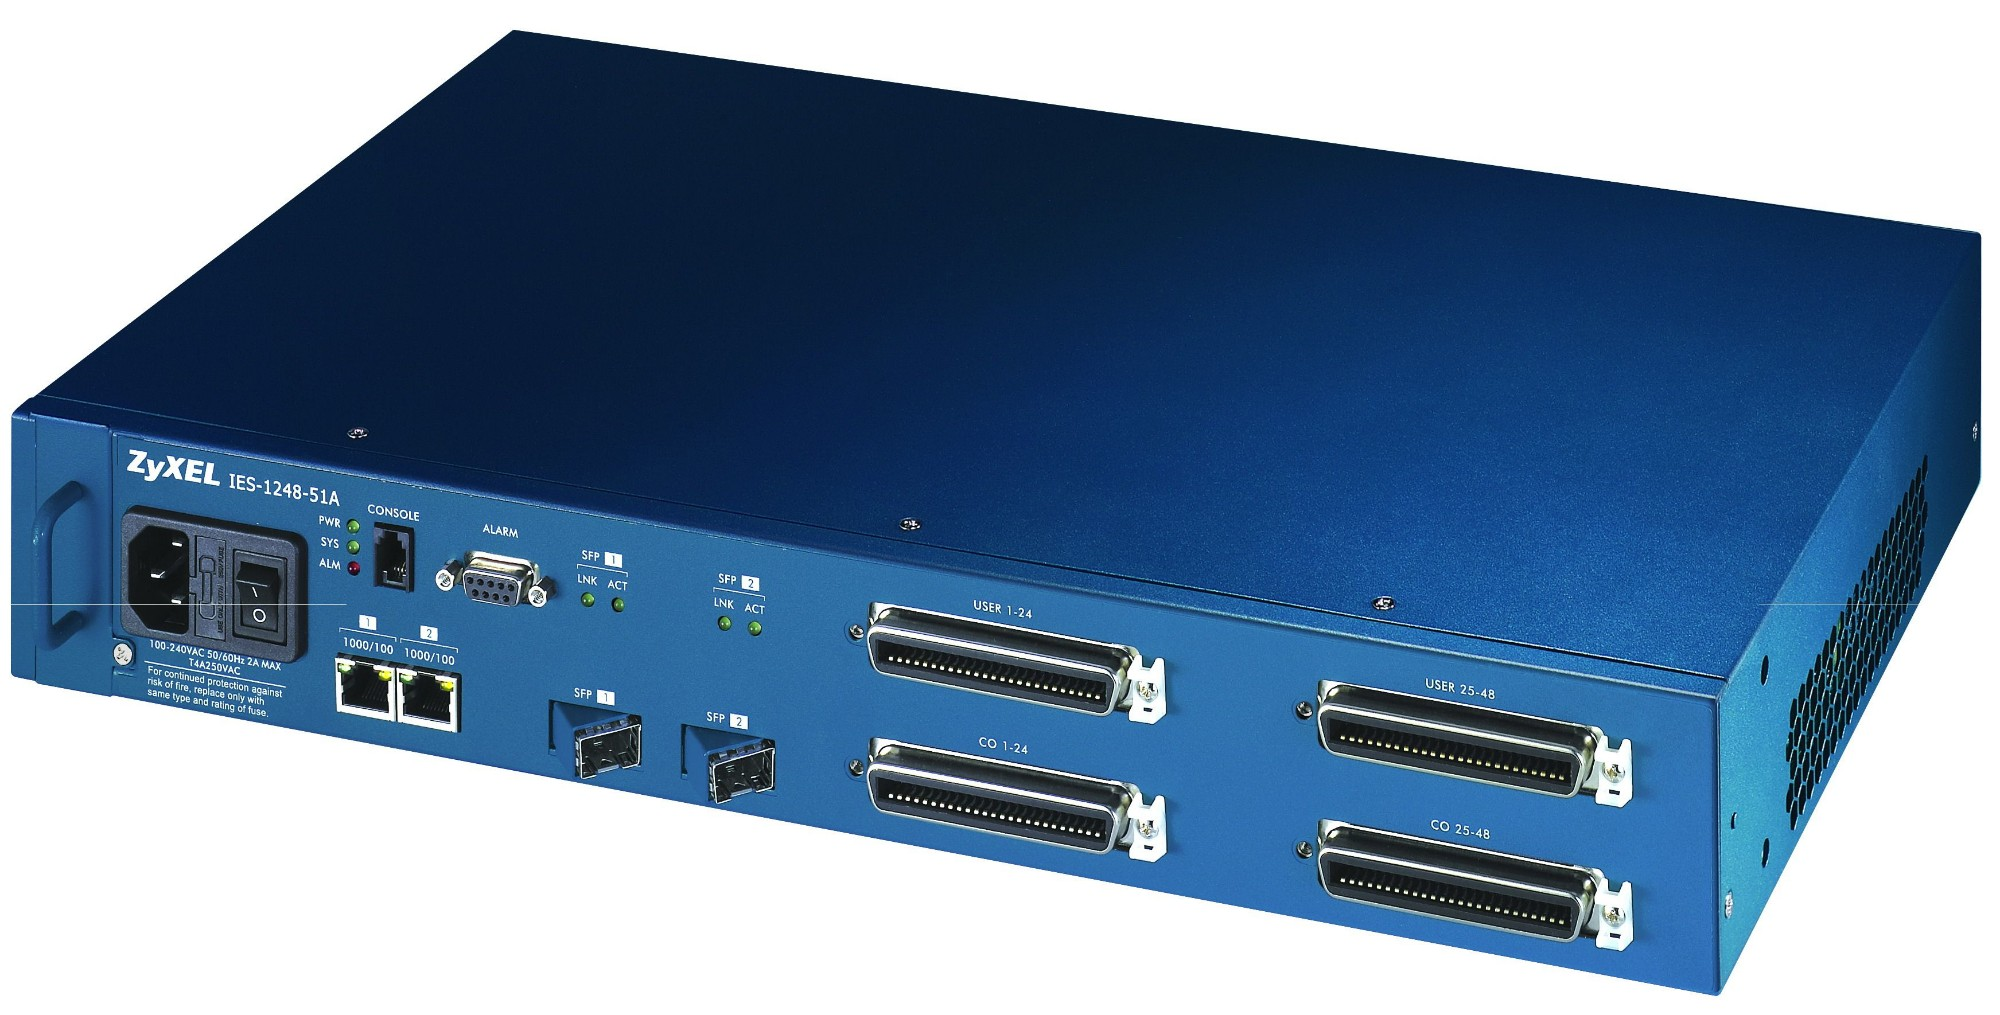 ZyXEL IES-1248-51A Ethernet LAN ADSL Black wired router - Wired ...